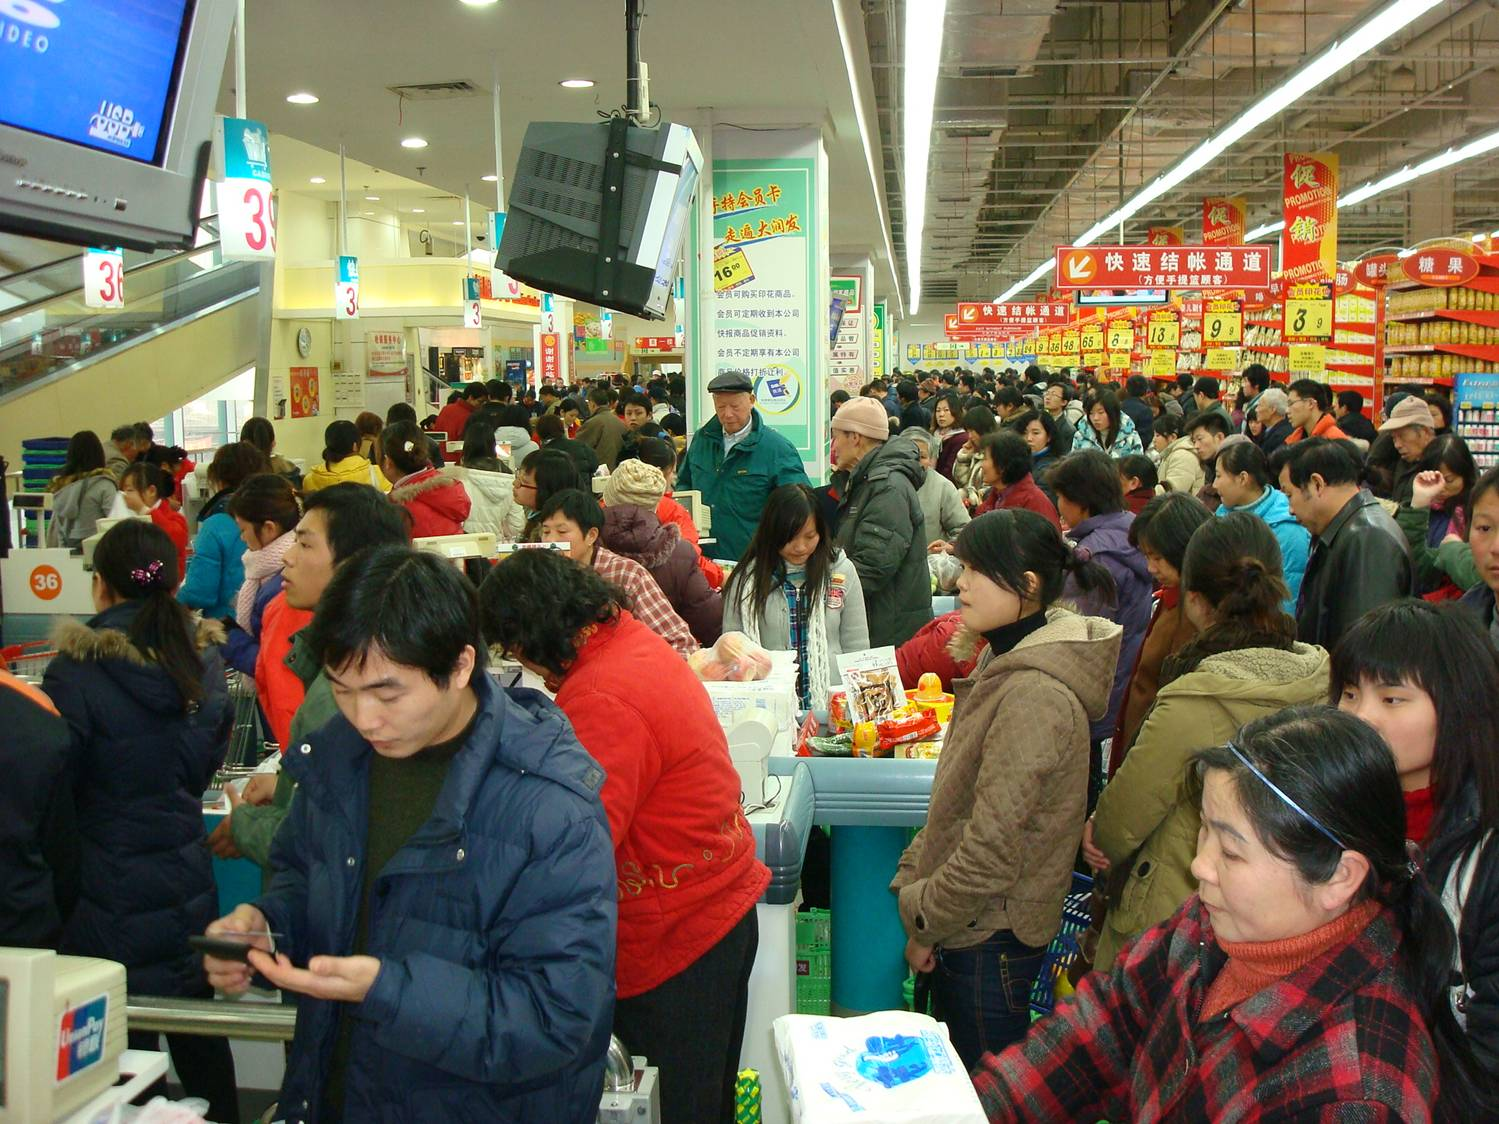 crowded checkout  in a Chinese supermarket